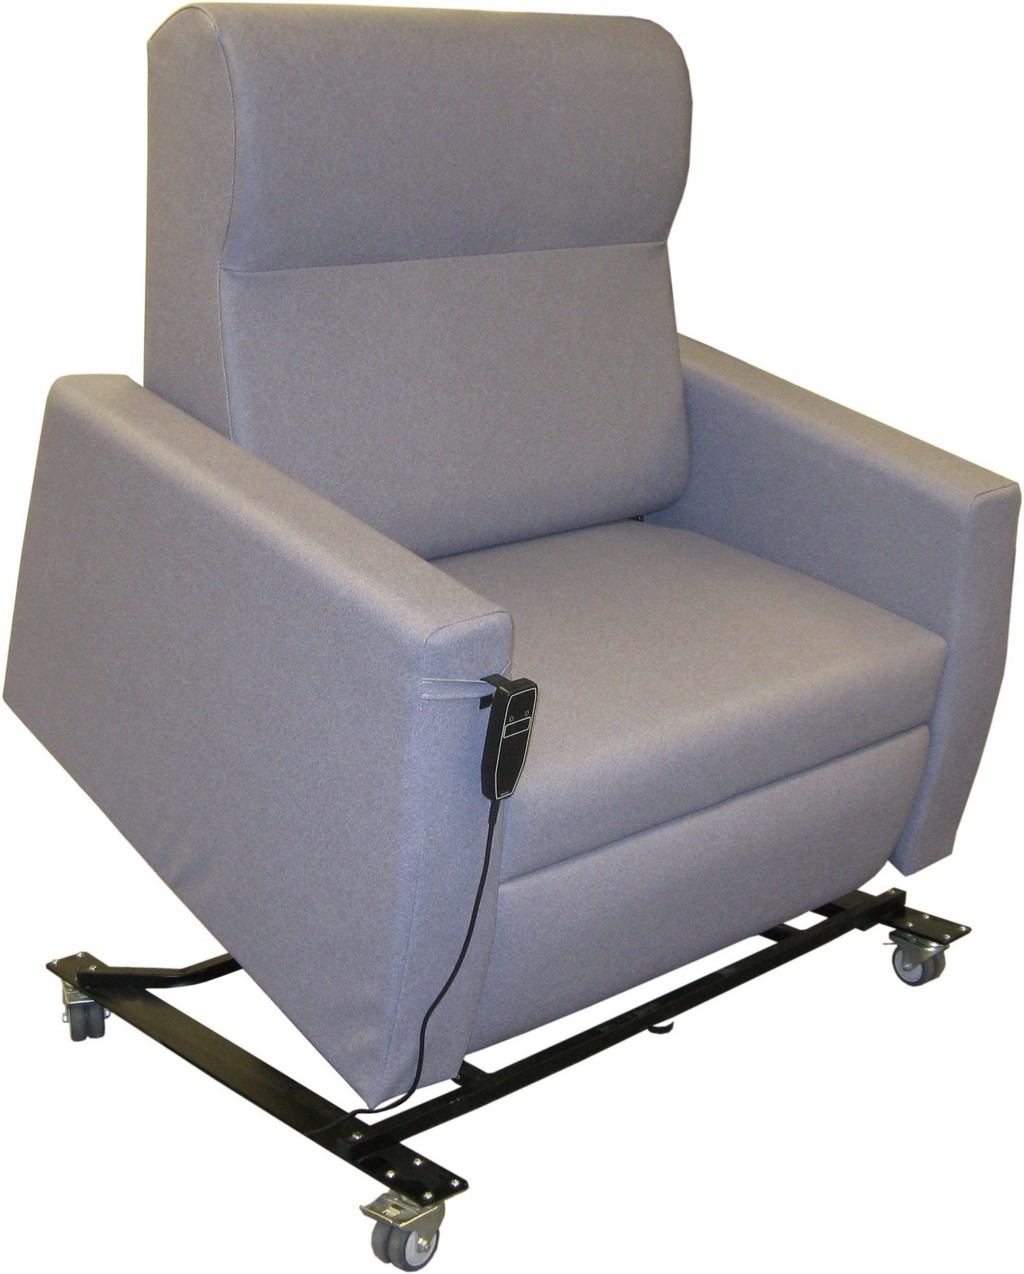 stair lift chair, high lift chair, snow lift chair, lazy boy lift chairs